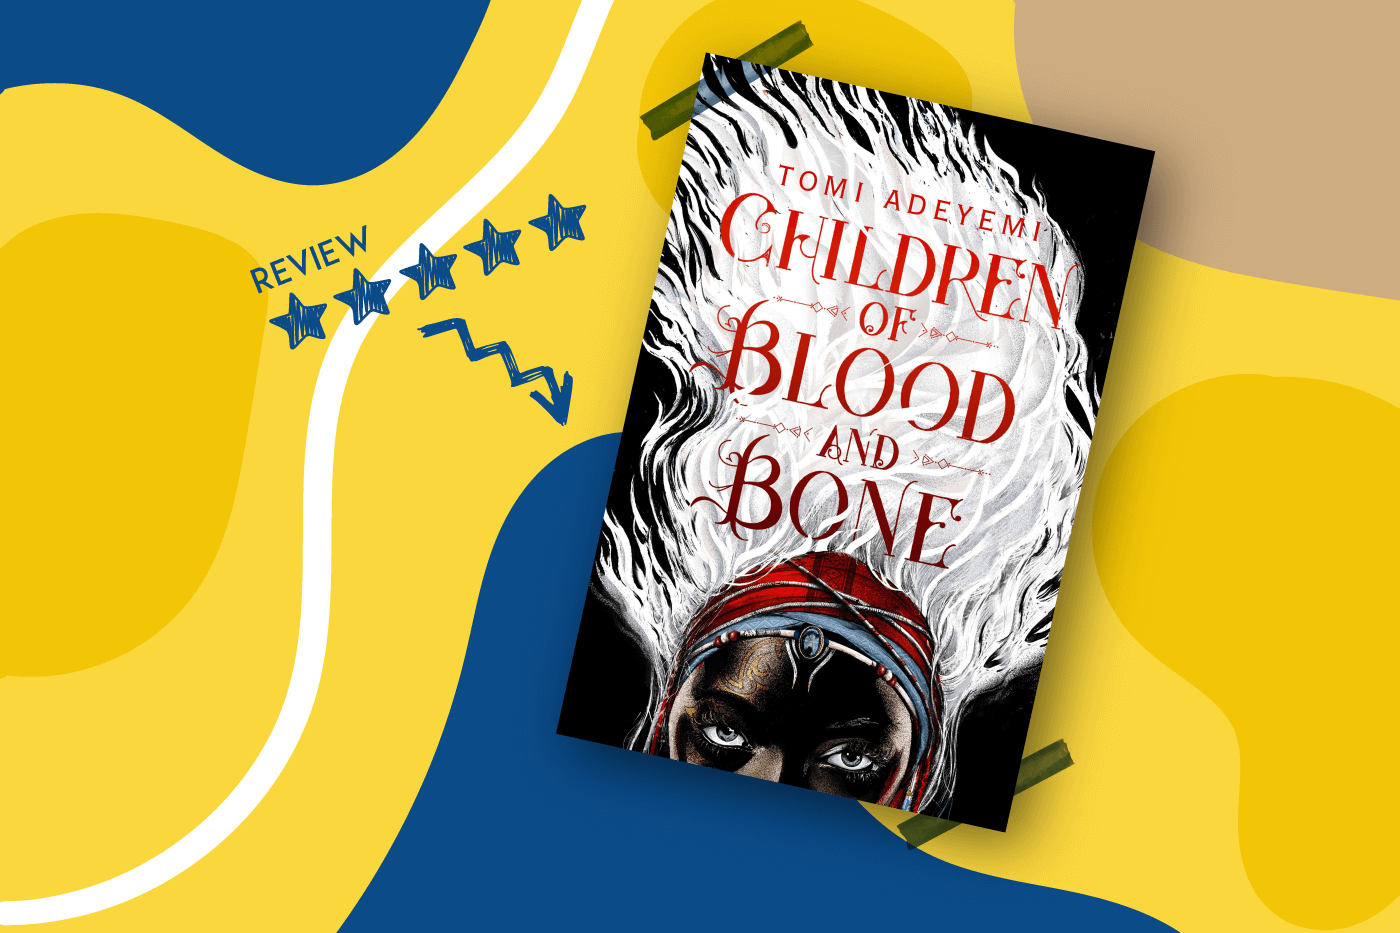 Children of Blood and Bone by Tomi Adeyemi book review